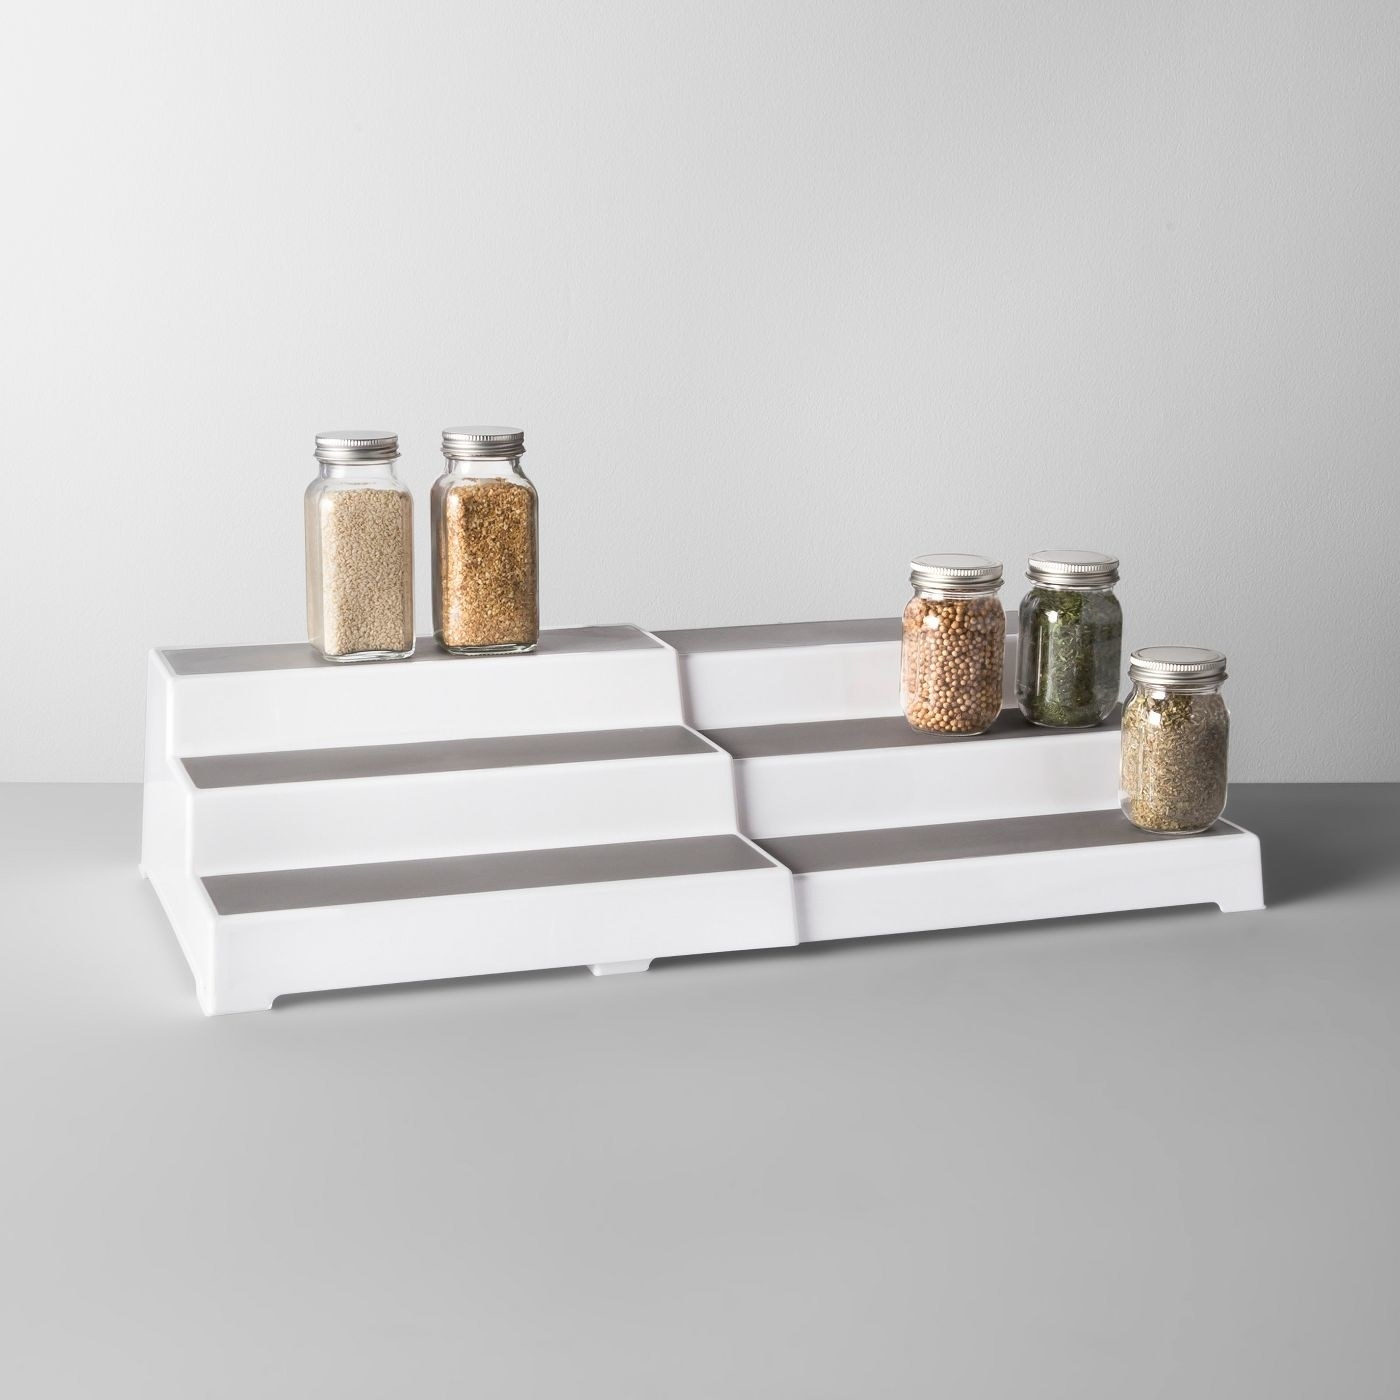 White and gray expandable shelf with spice jars on top